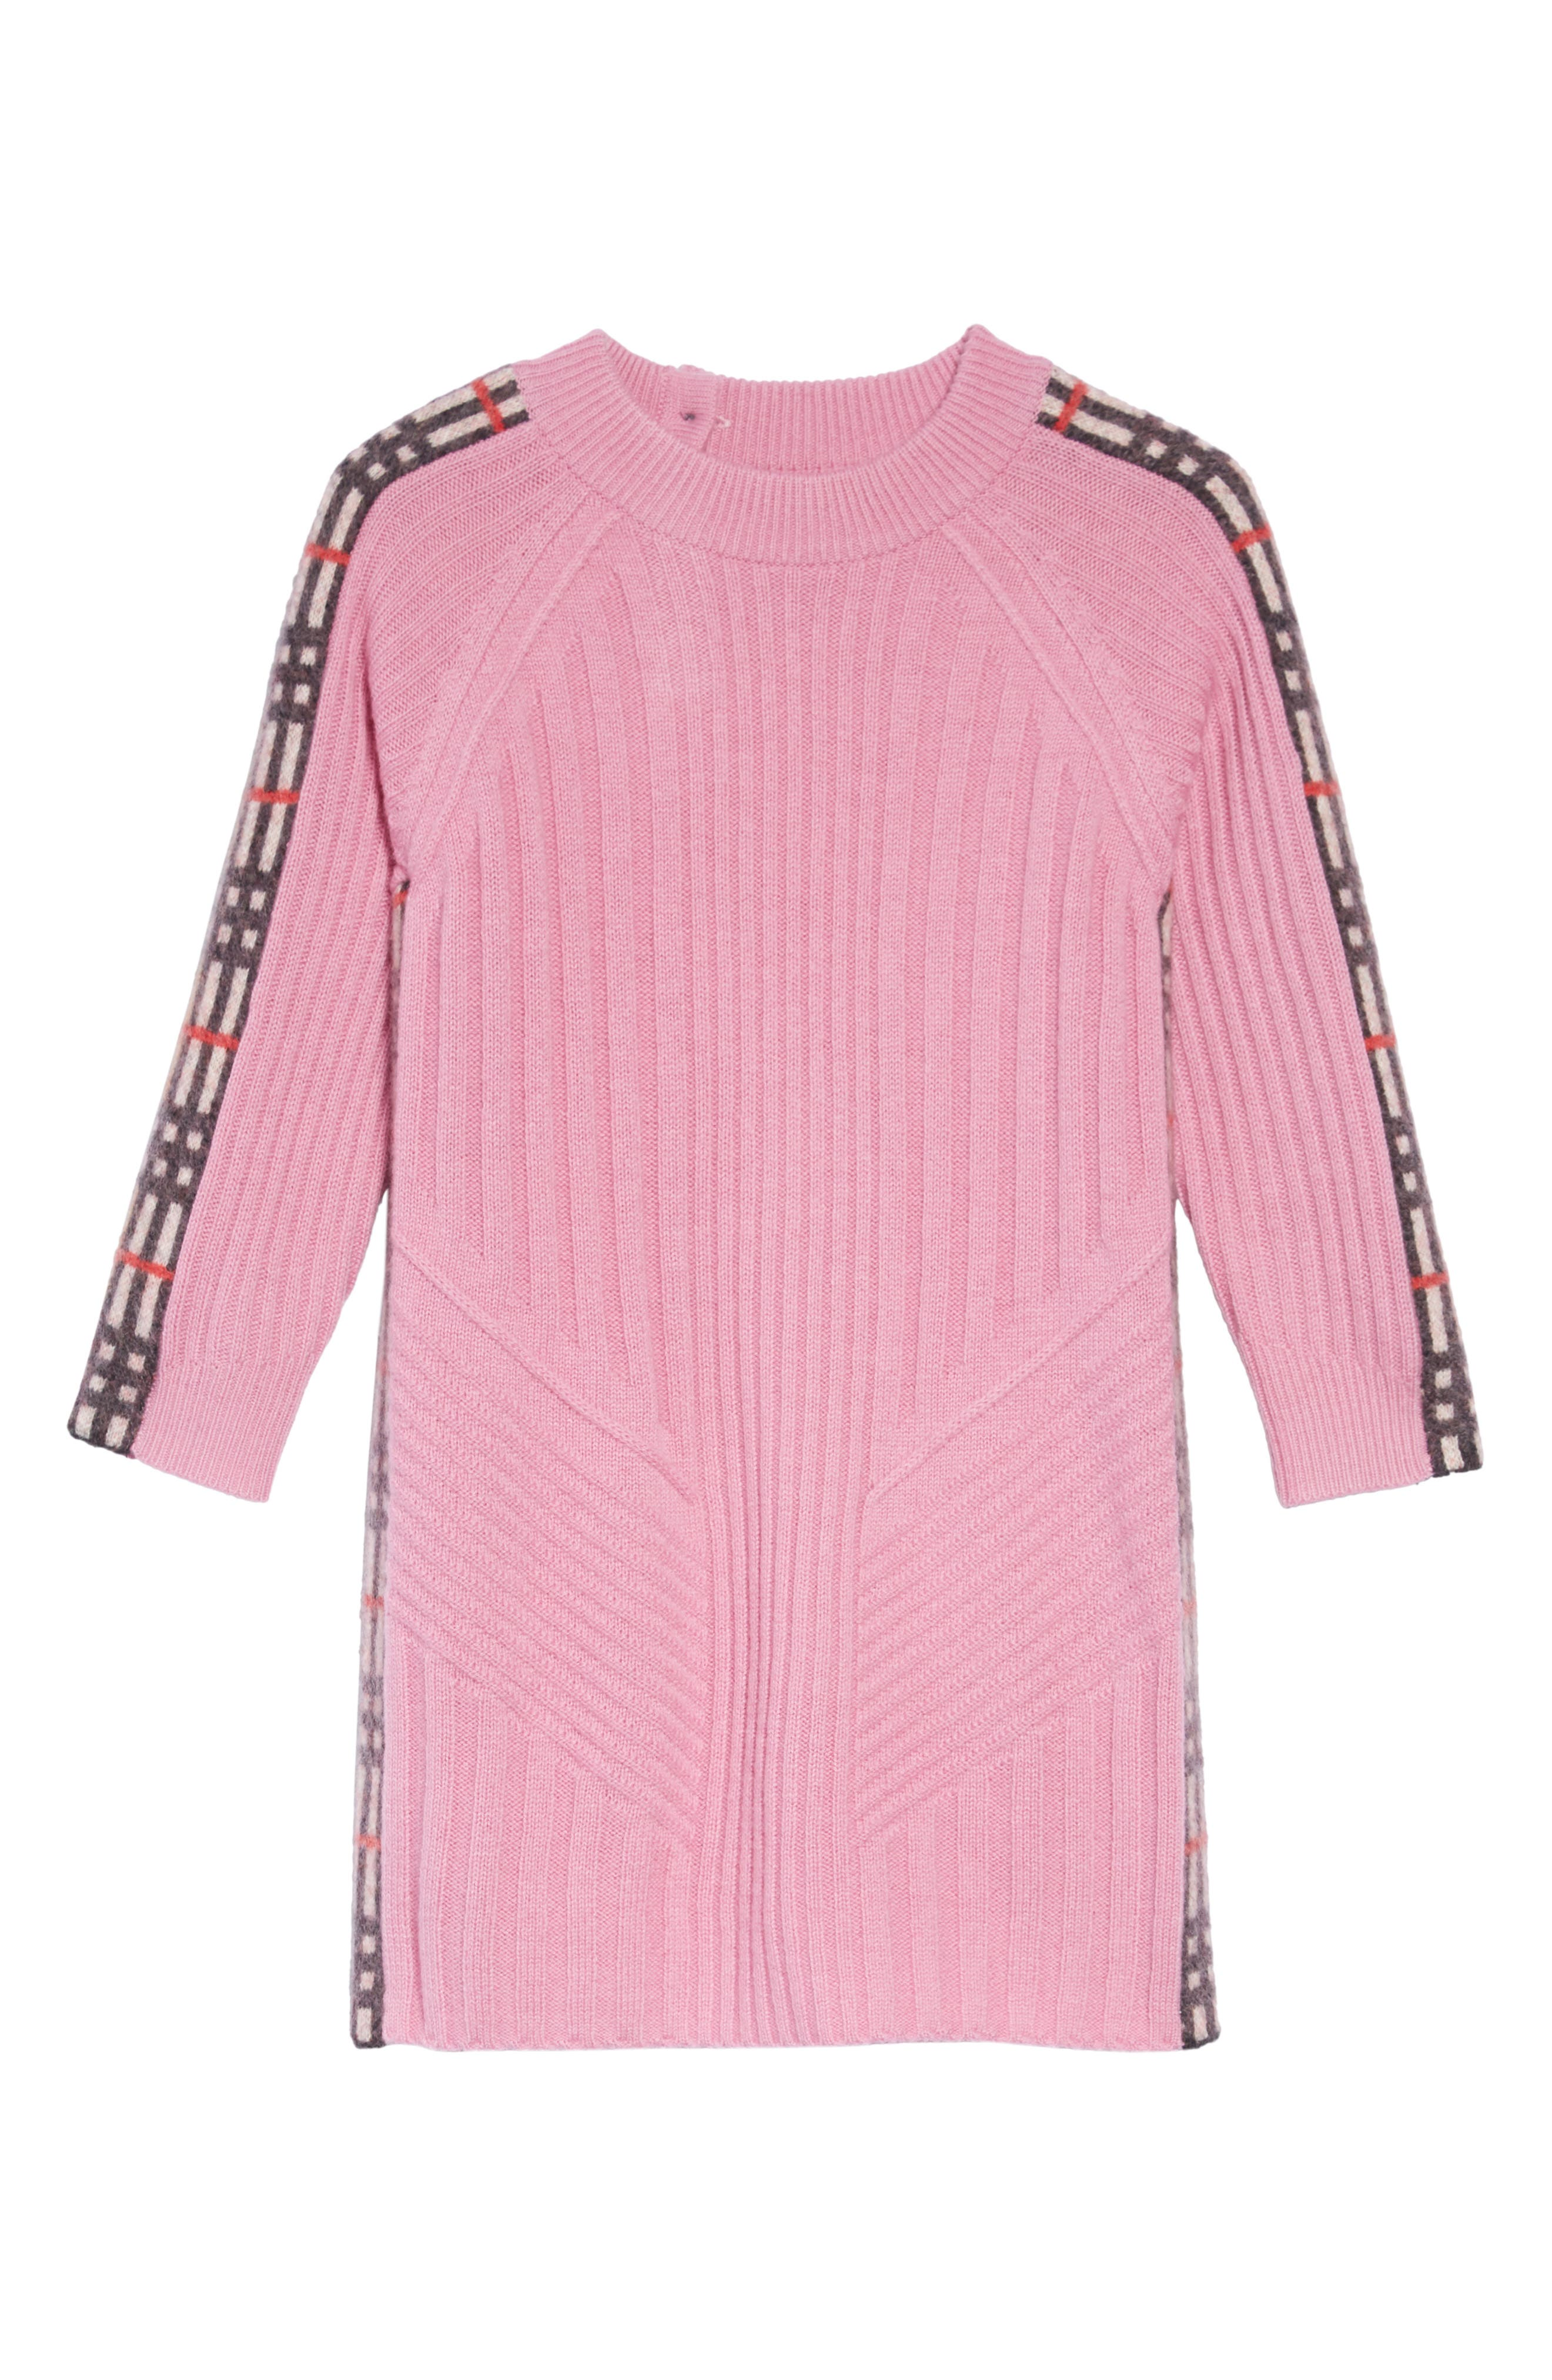 Kids Cathina Check Detail Wool & Cashmere Sweater Dress,                             Main thumbnail 1, color,                             ROSE PINK